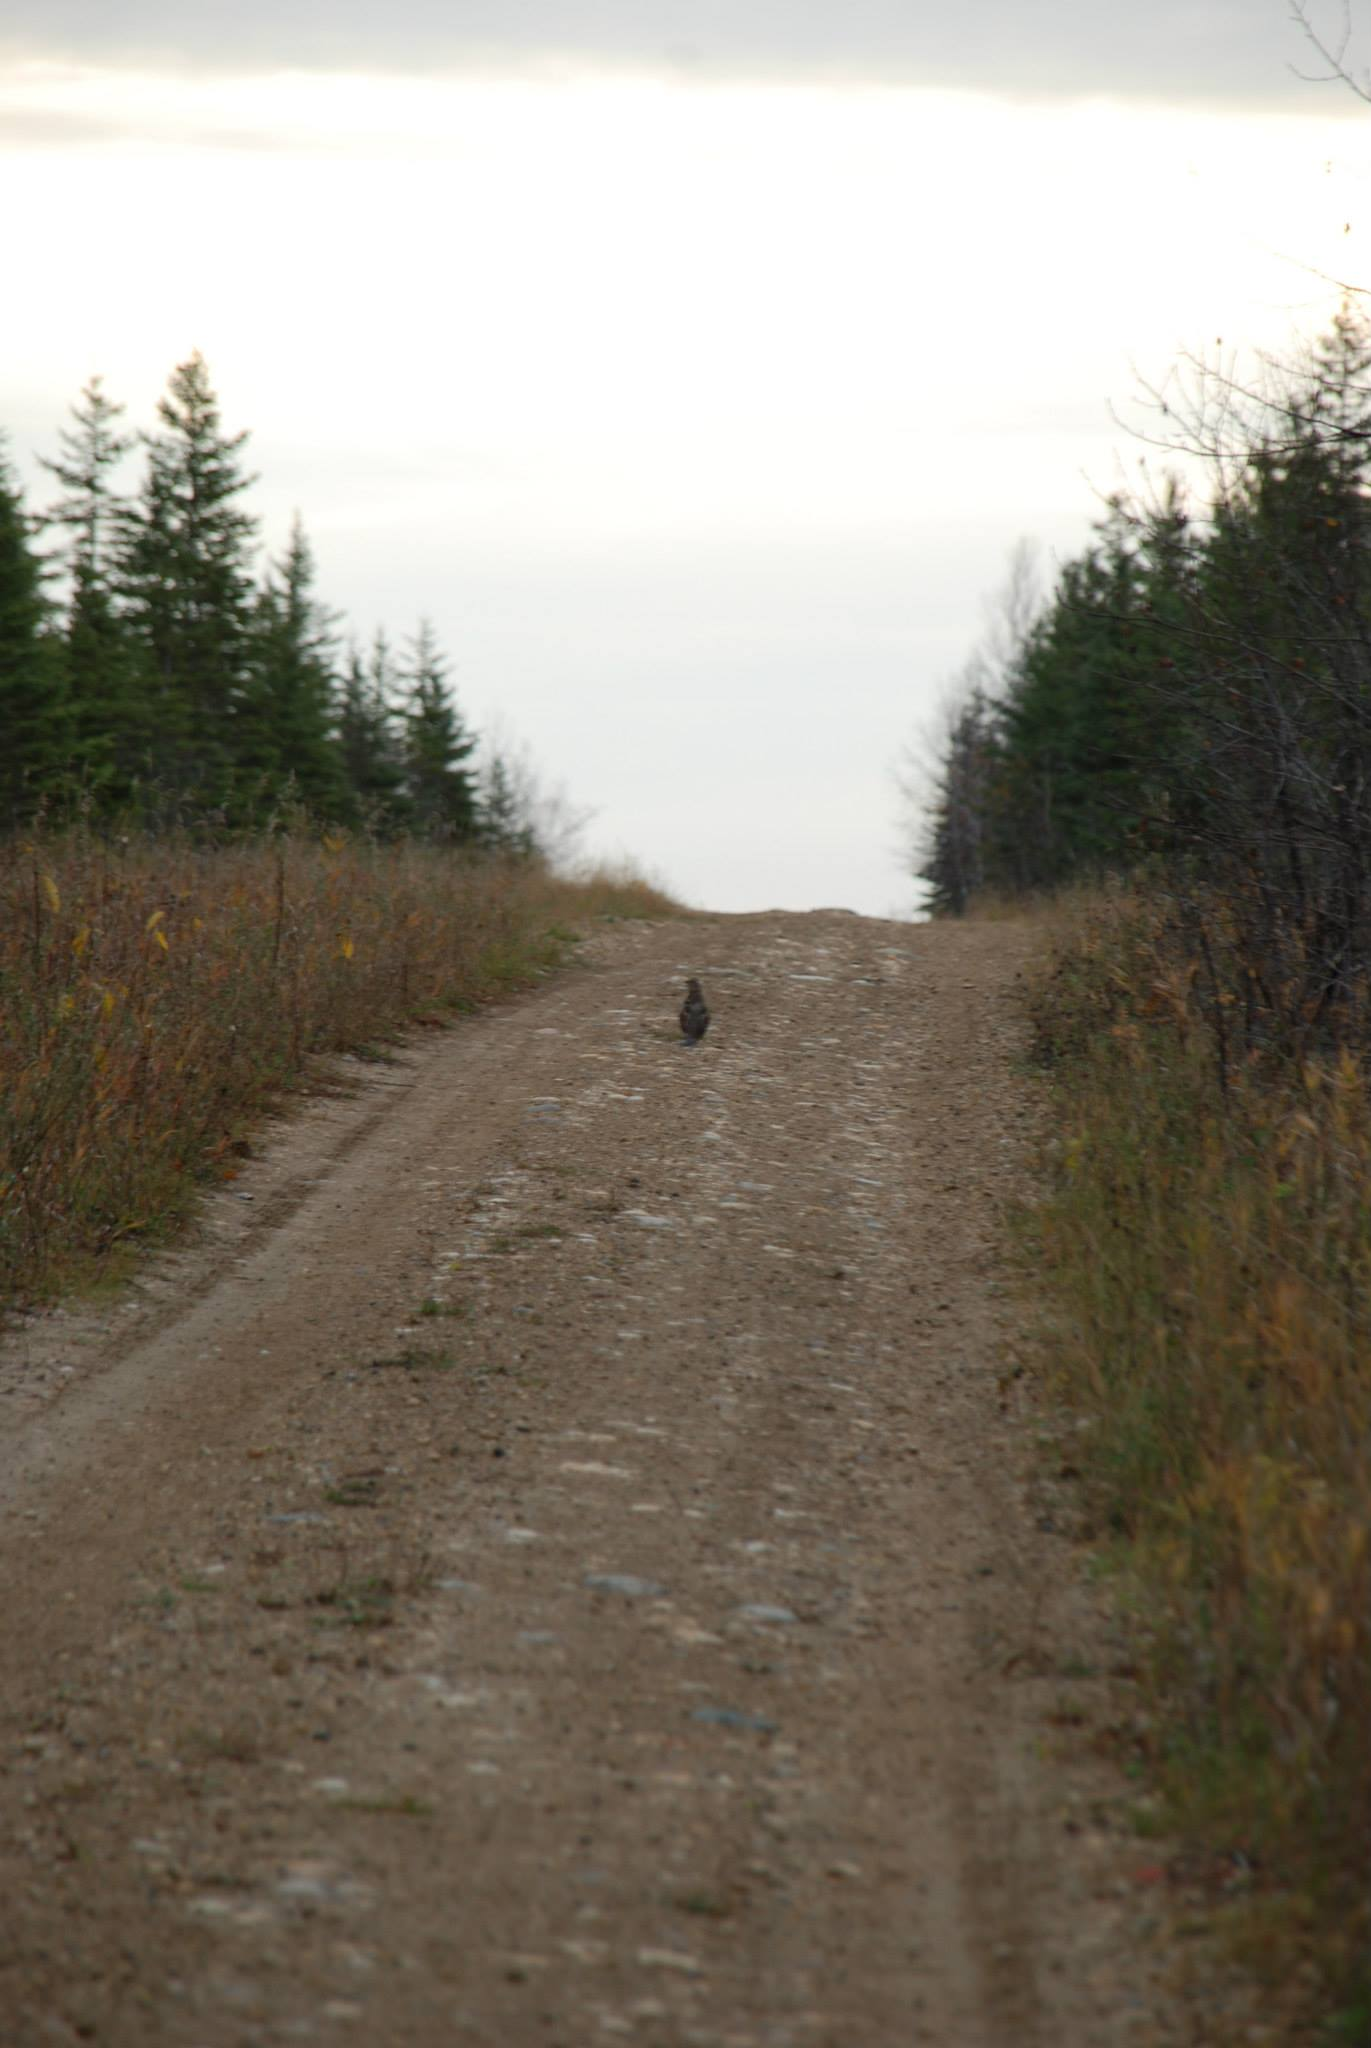 The grouse which the wolf was stalking before I rudely interrupted it. She stayed in that spot the entire time until Jean Paul went after it. How they are not extinct, I do not know.